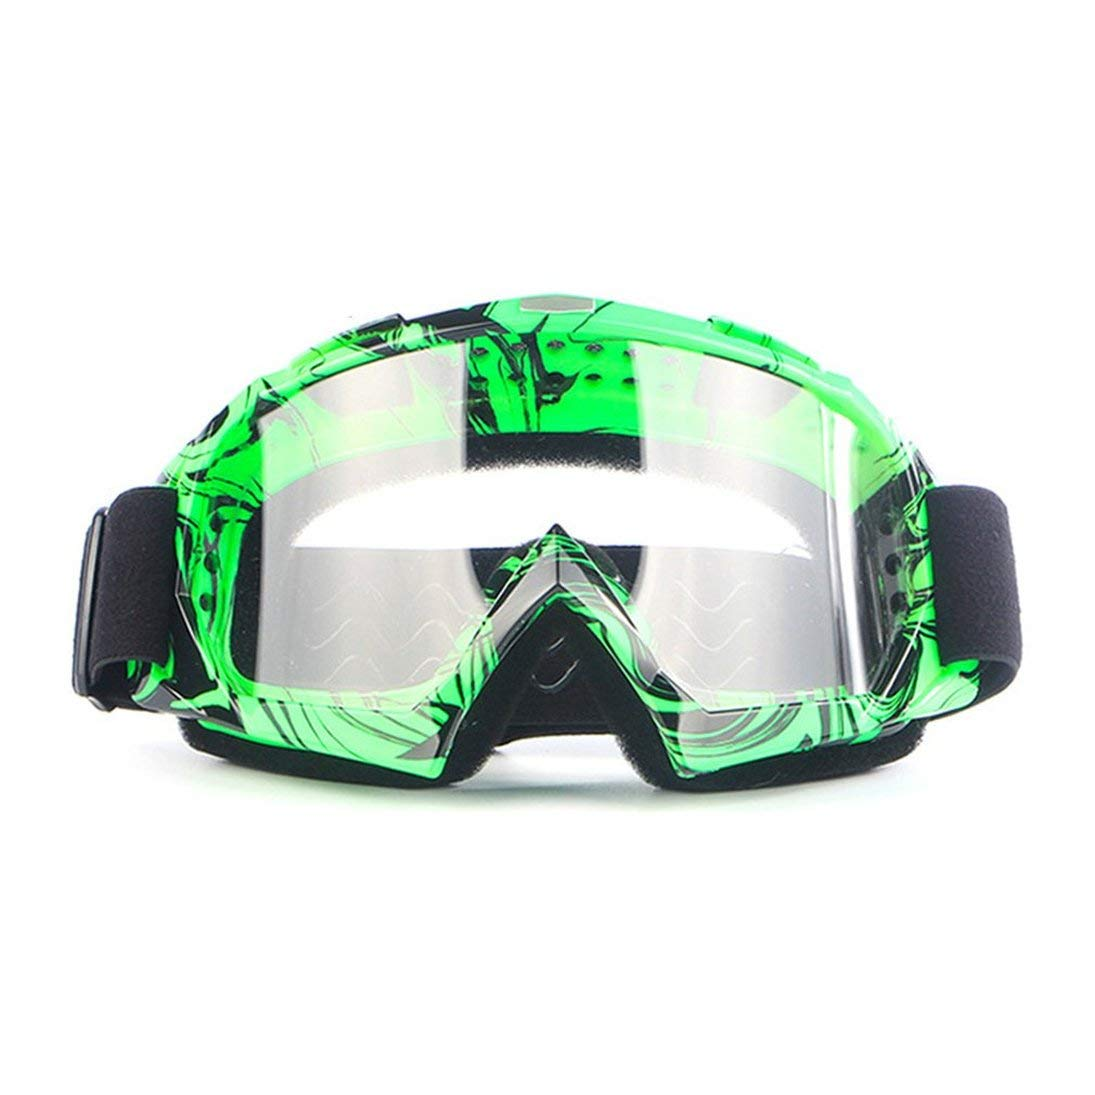 Baynne Motorcycle Rider Wear X600 Motocross Protective Goggles Riding Ski Goggles for Outdoor Activity Skiing Riding